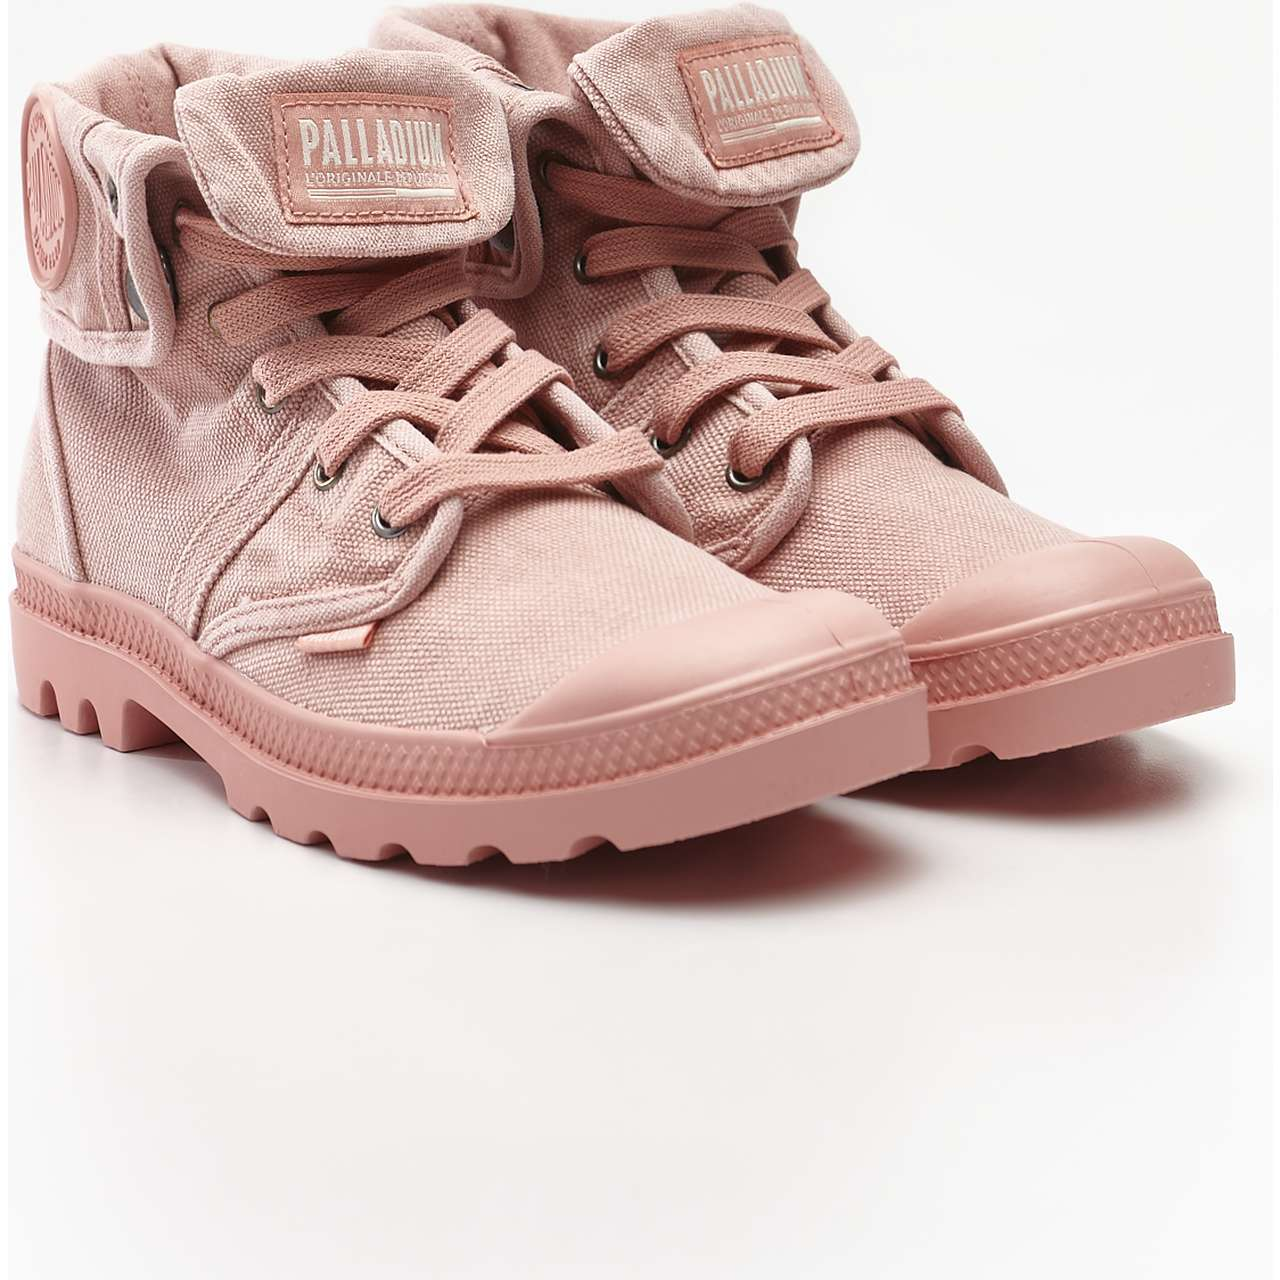 Buty Palladium  <br/><small>PALLABROUSE BAGGY 673 ROSE TAN </small>  92478-673